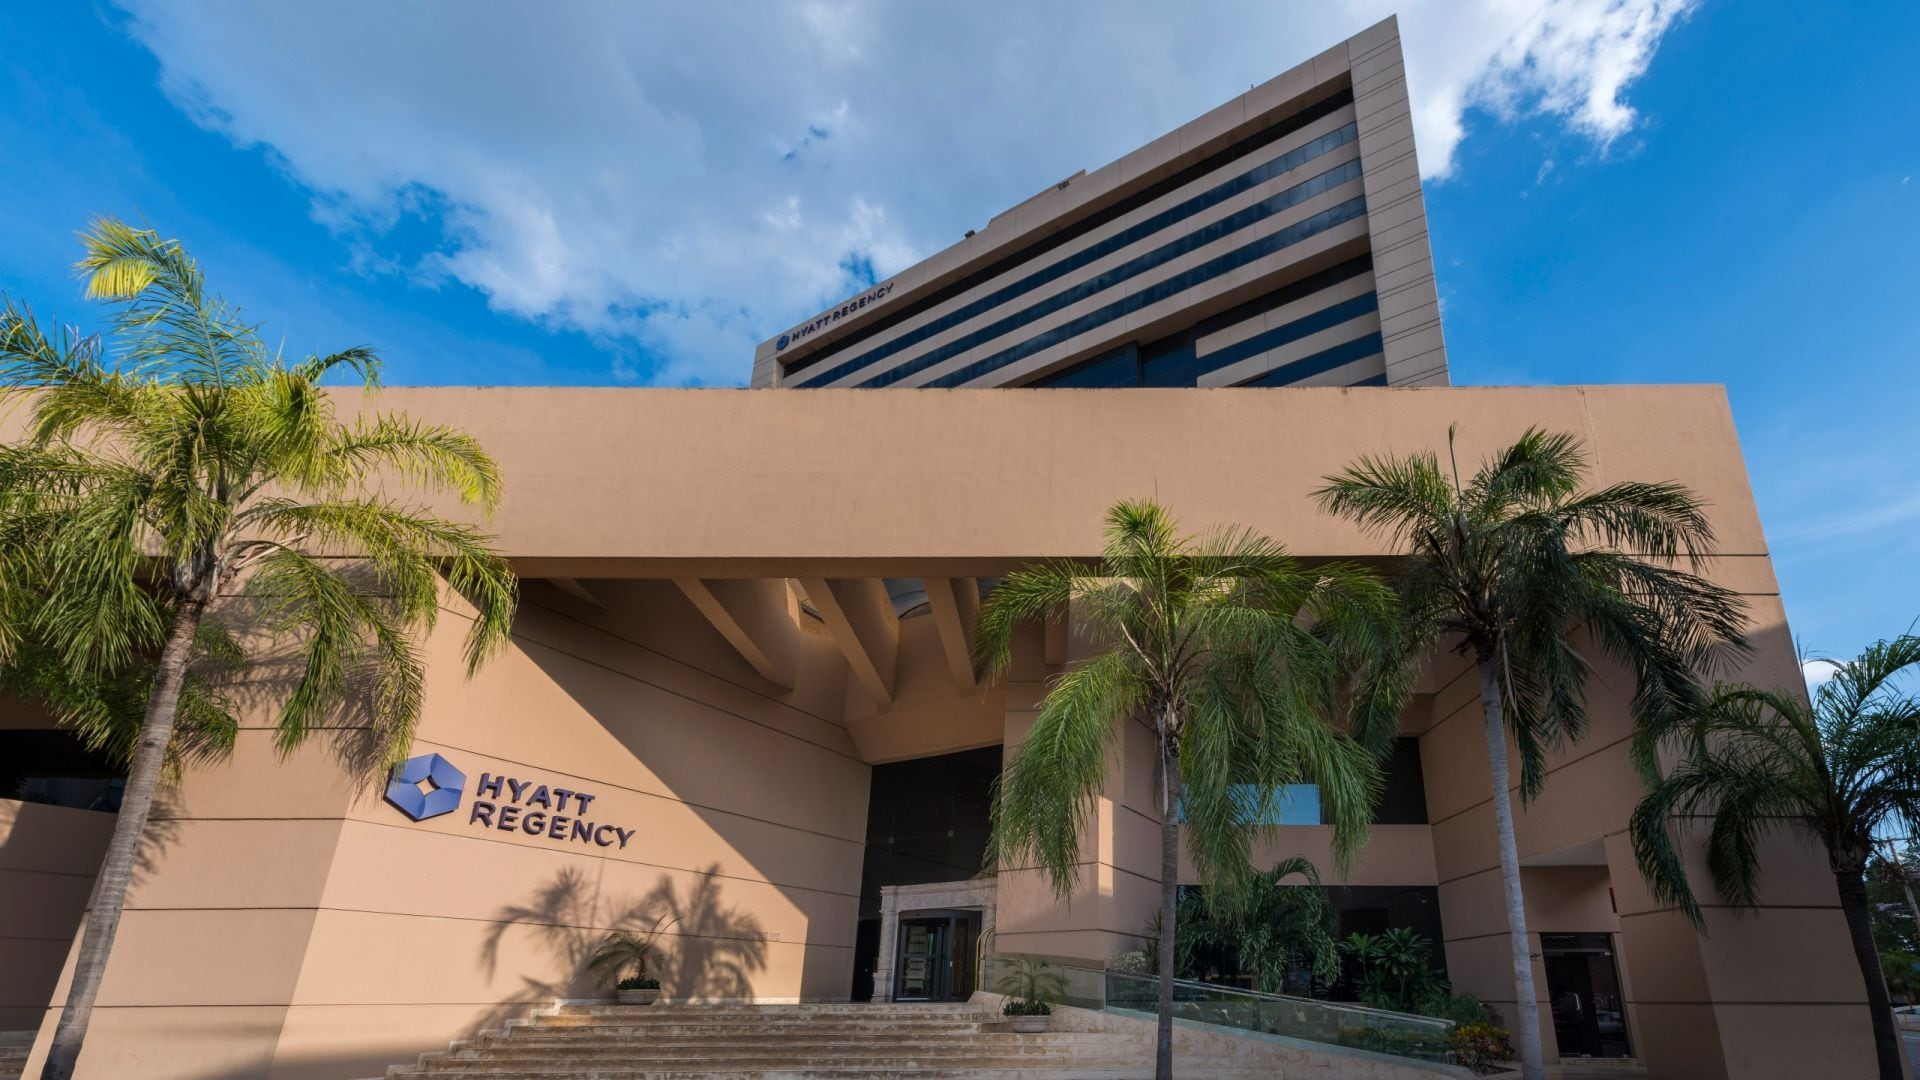 Hyatt Regency Merida Exterior